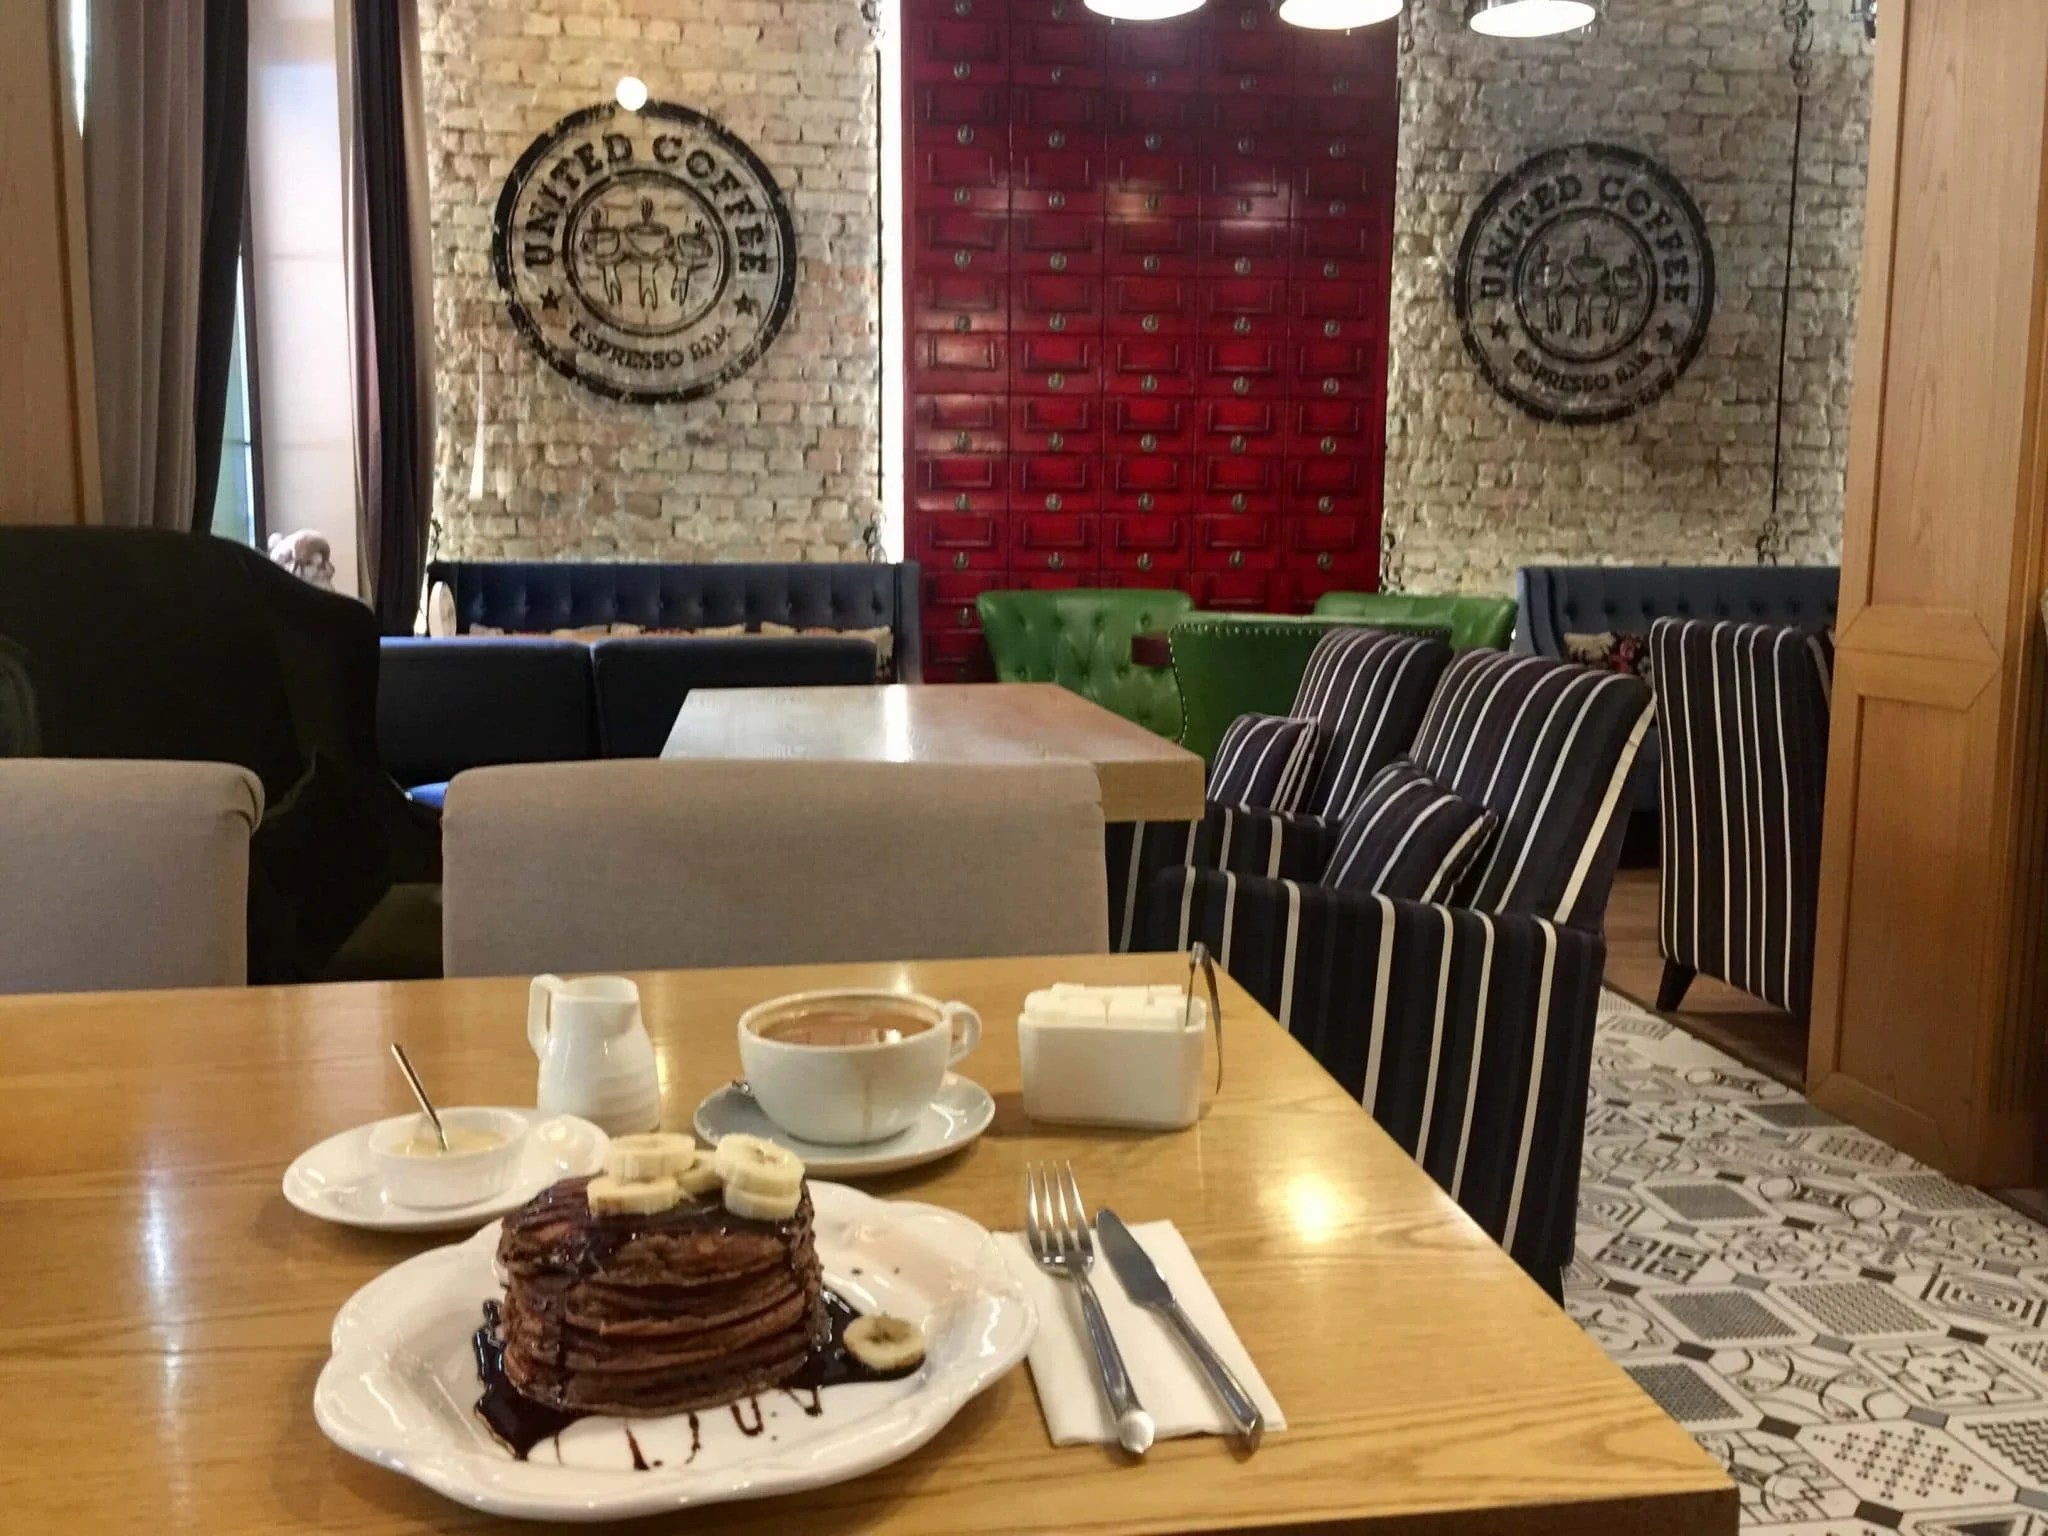 Pancakes at United Coffee, one of the best Almaty Cafes